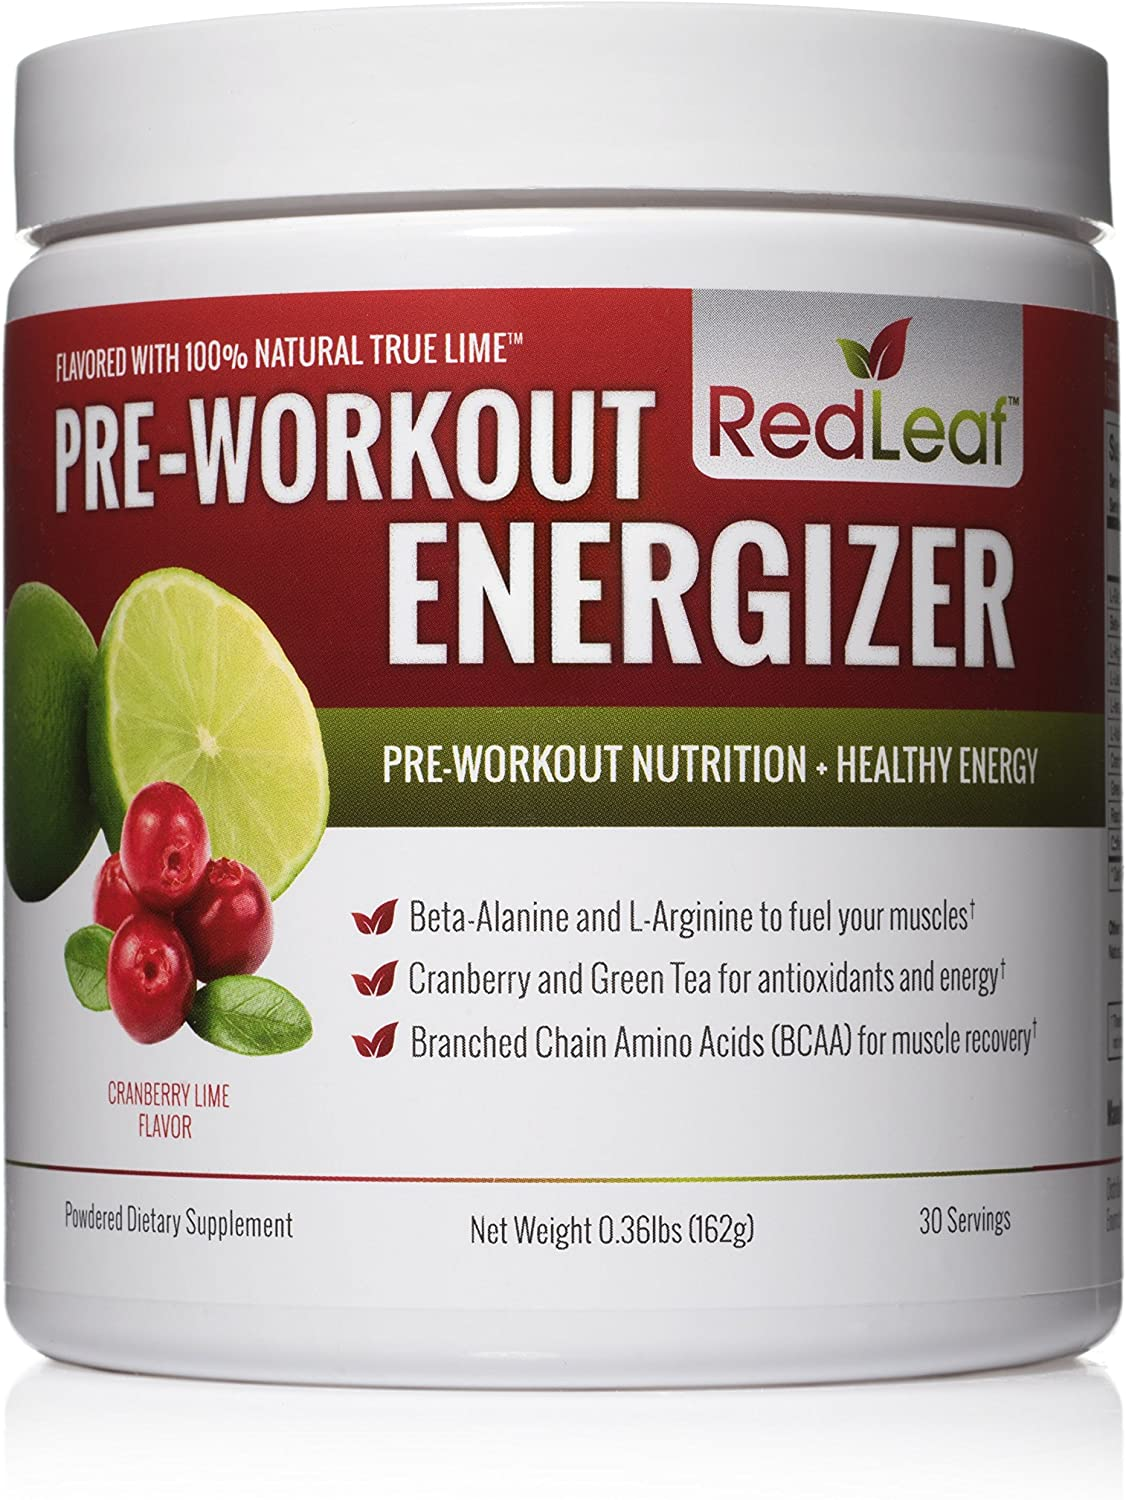 Red Leaf Pre-Workout Energizer Powder, BCAA's, Beta-Alanine, Amino Acids and Green Tea for Immune Support, Natural Cranberry Lime Flavor